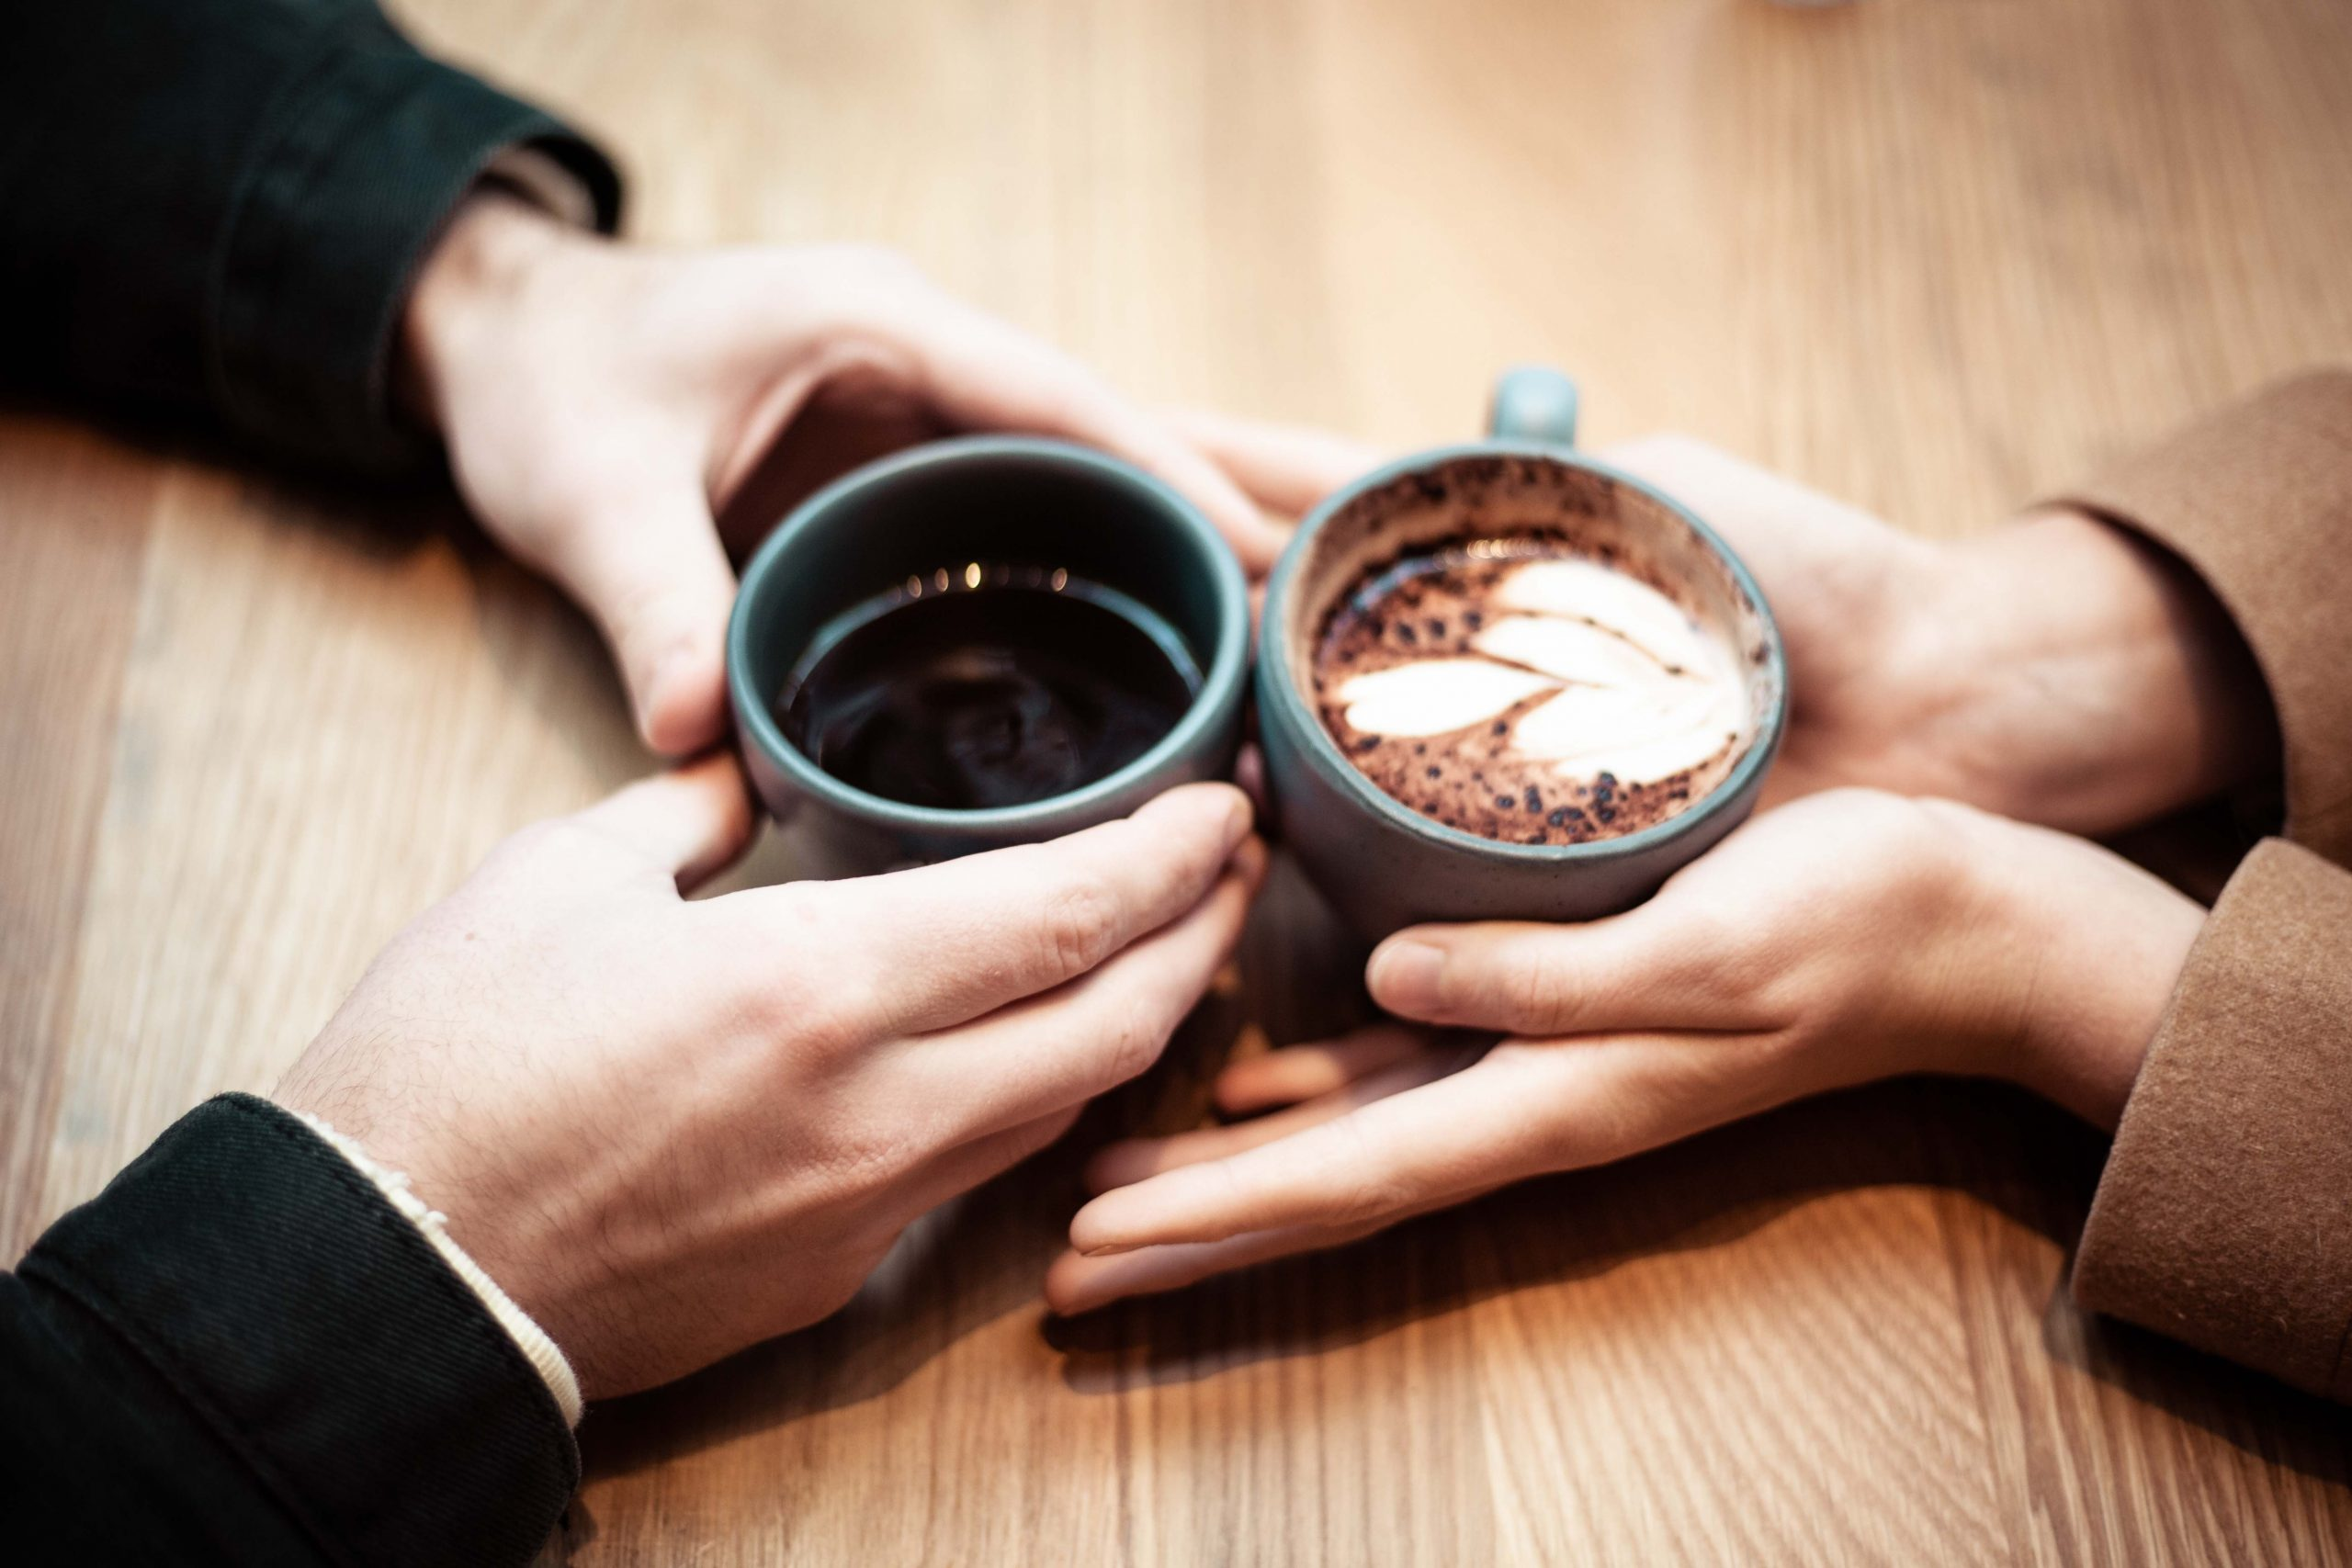 two person holding ceramic mugs with coffee